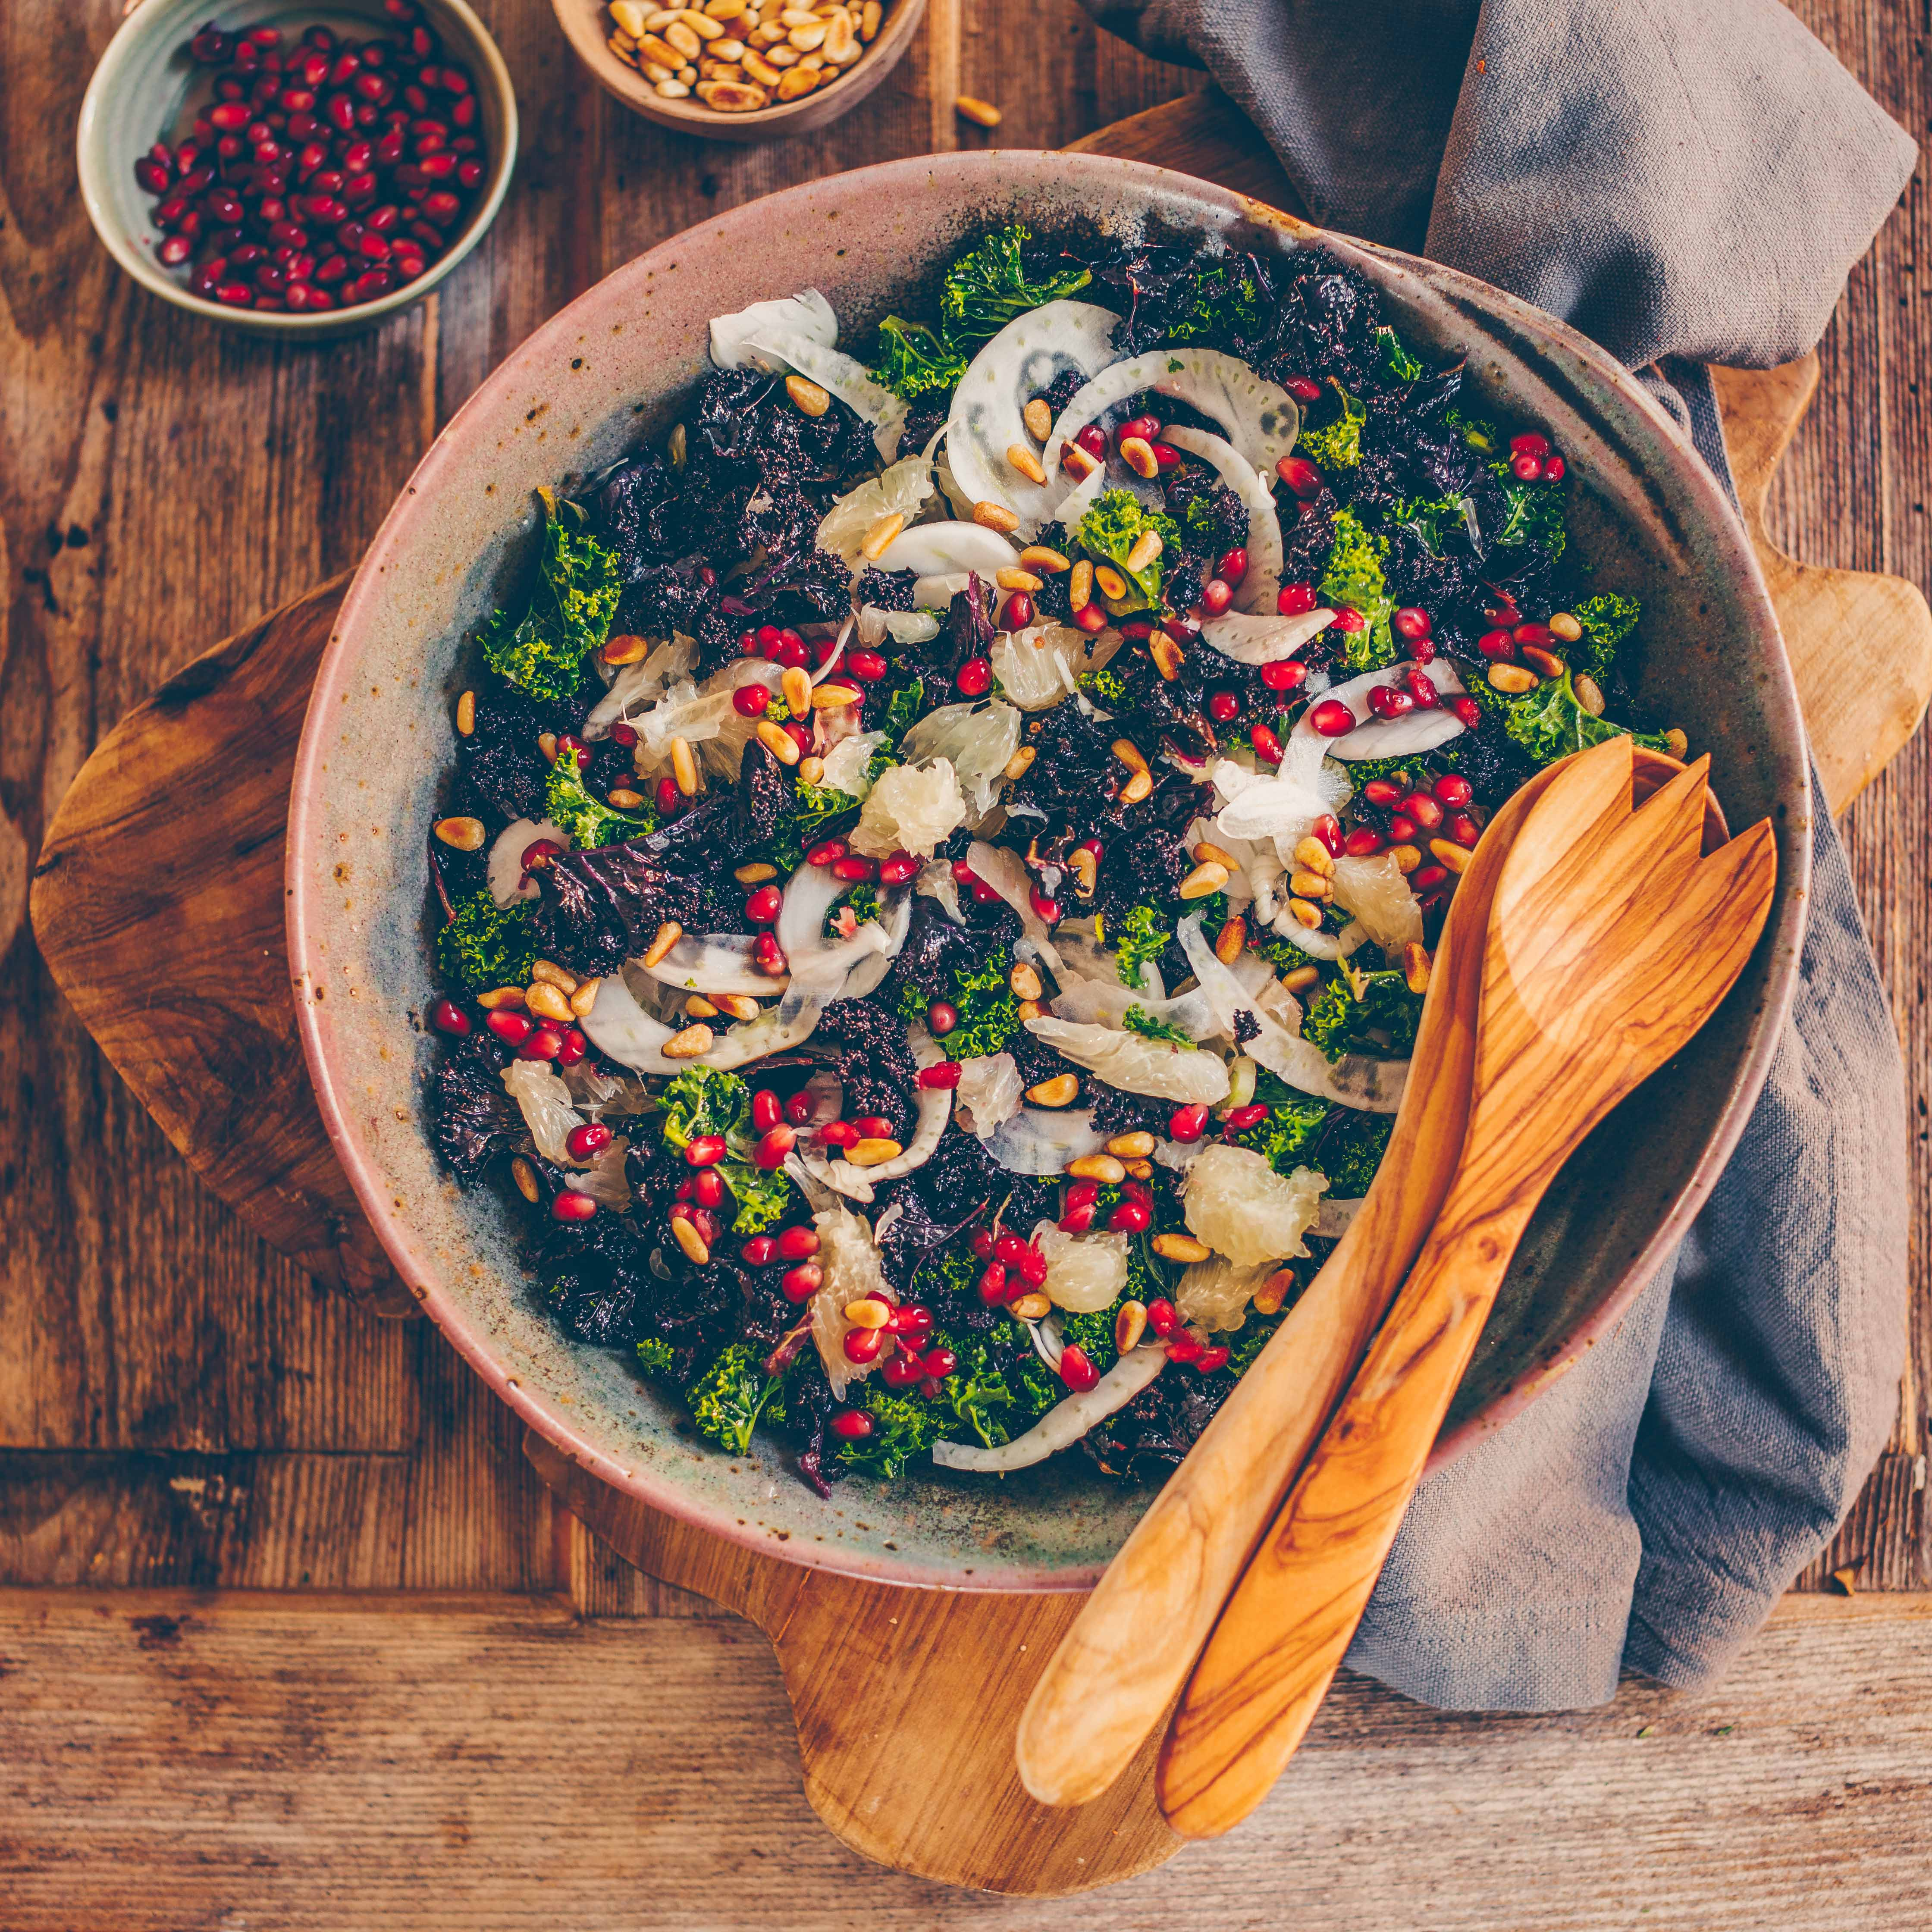 Kale salad with pomelo, fennel and pomegranate